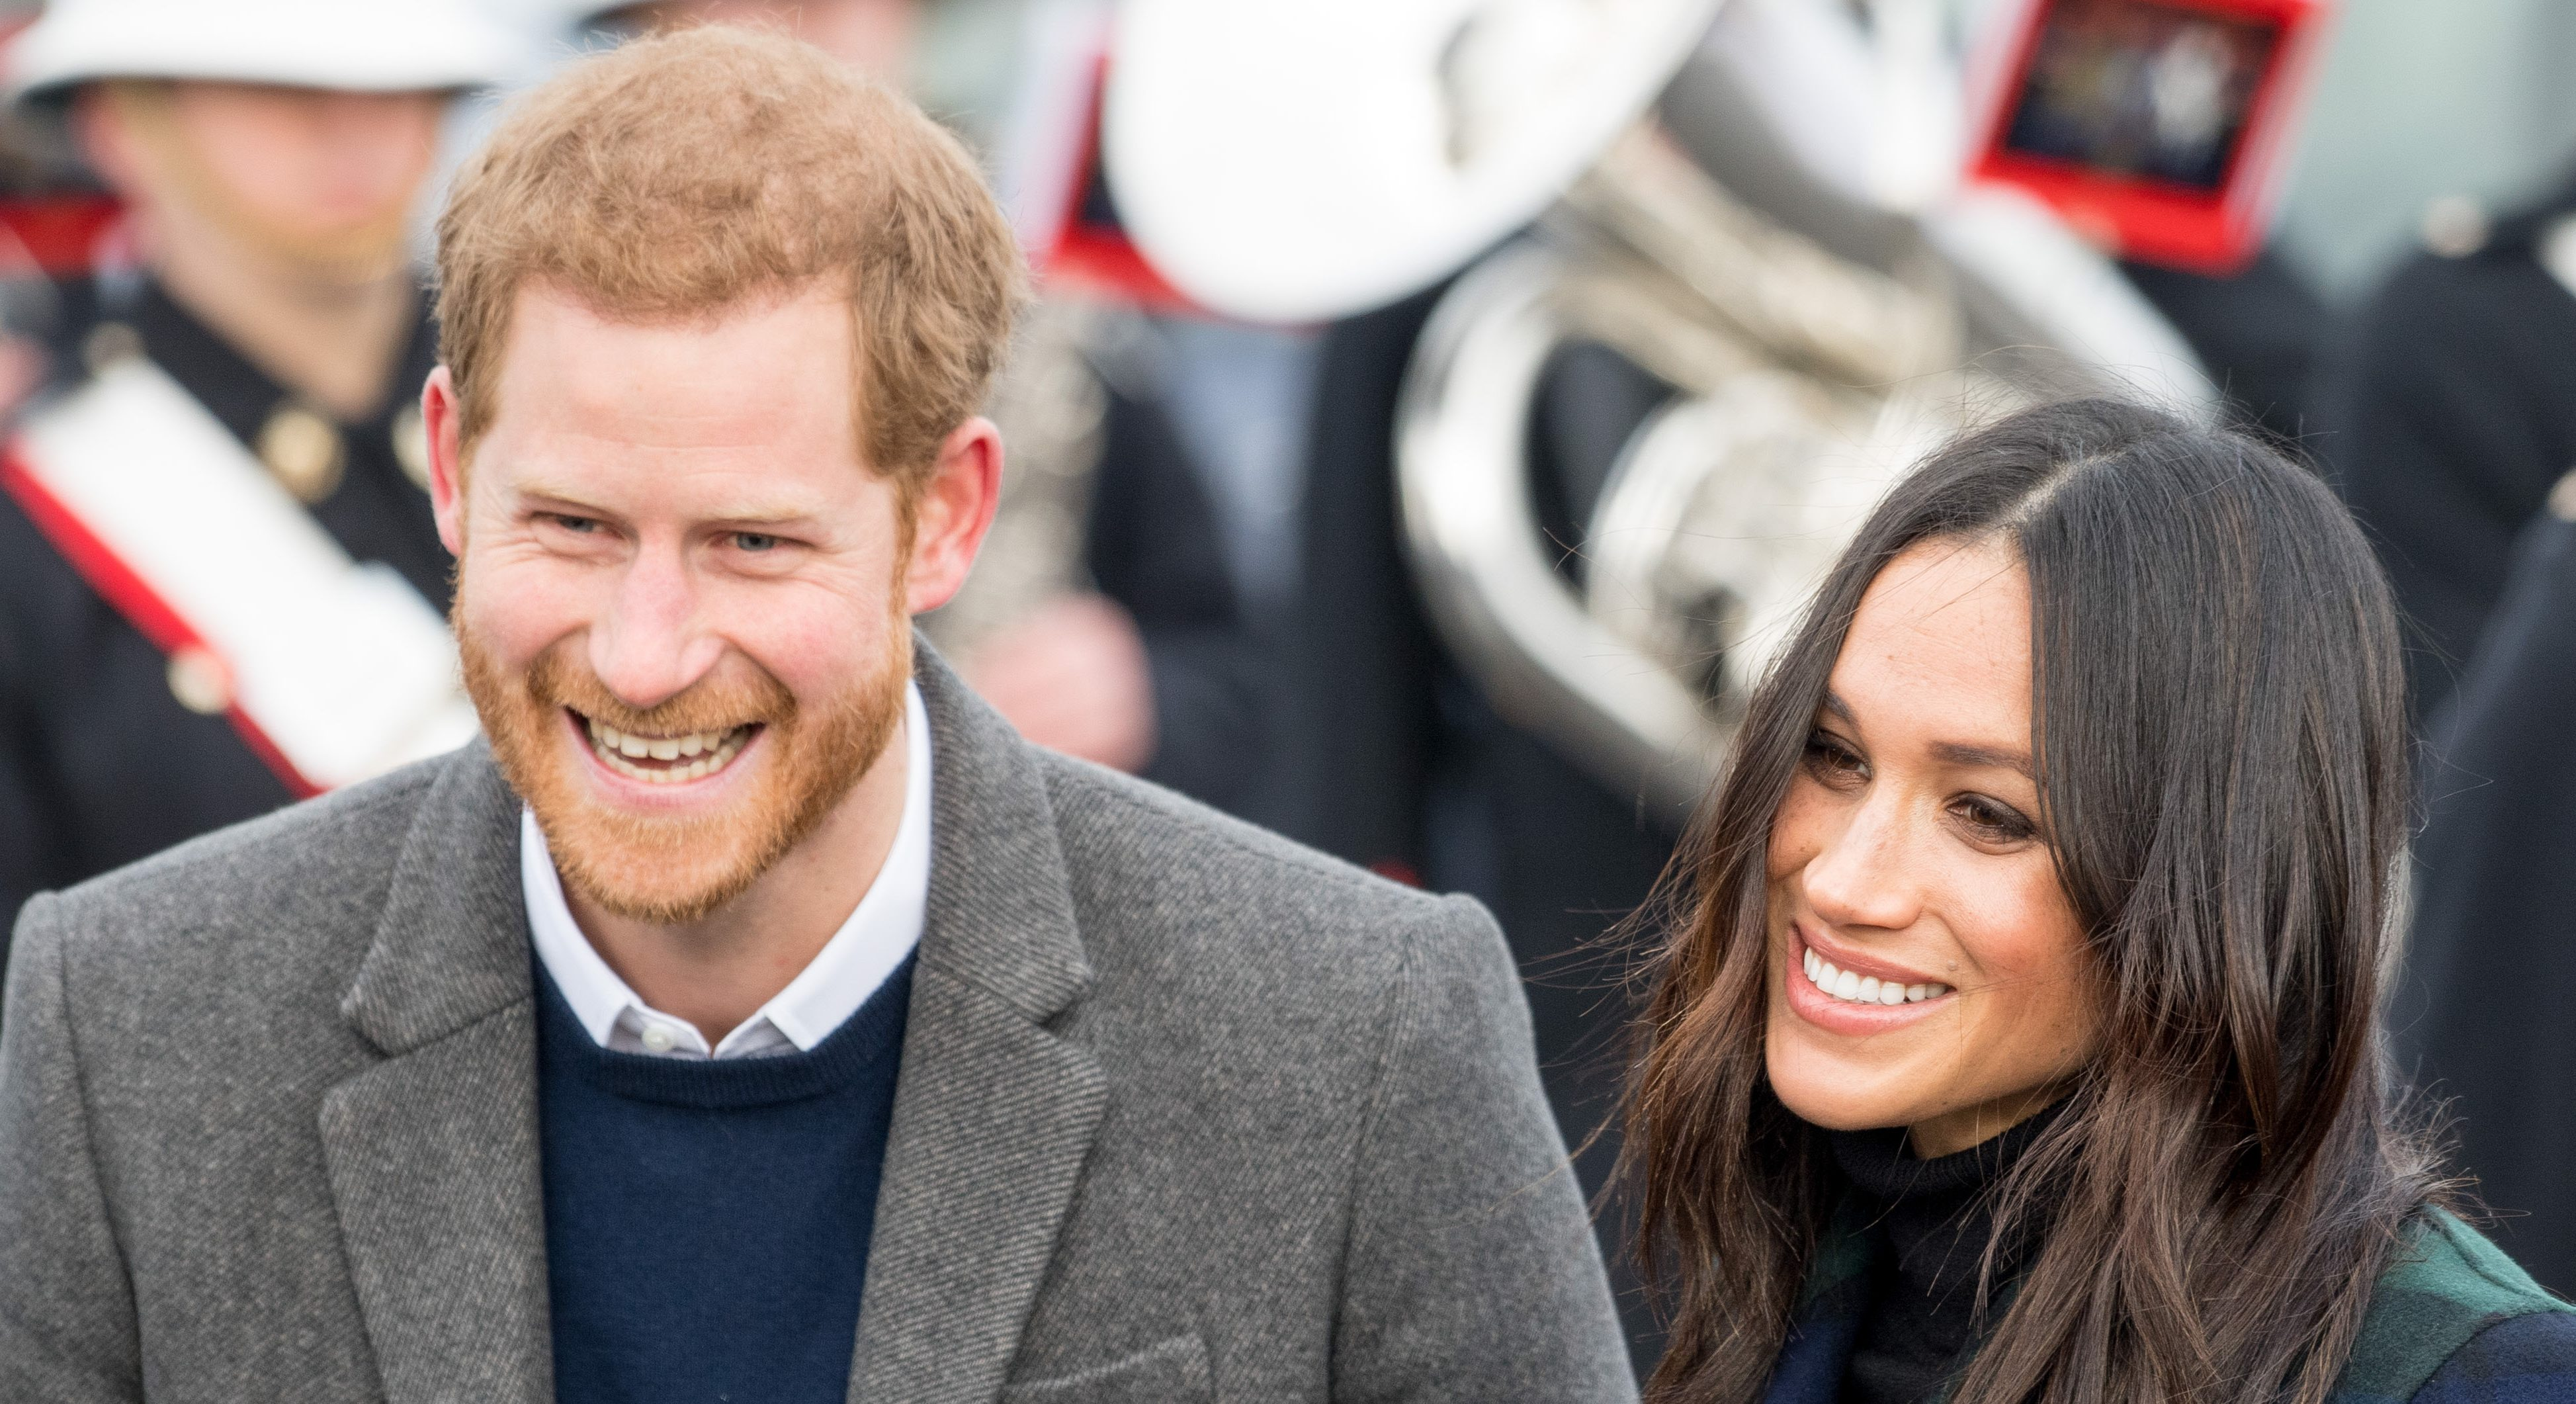 Meghan Markle pays sweet, loving tribute to her husband Prince Harry on his 35th birthday